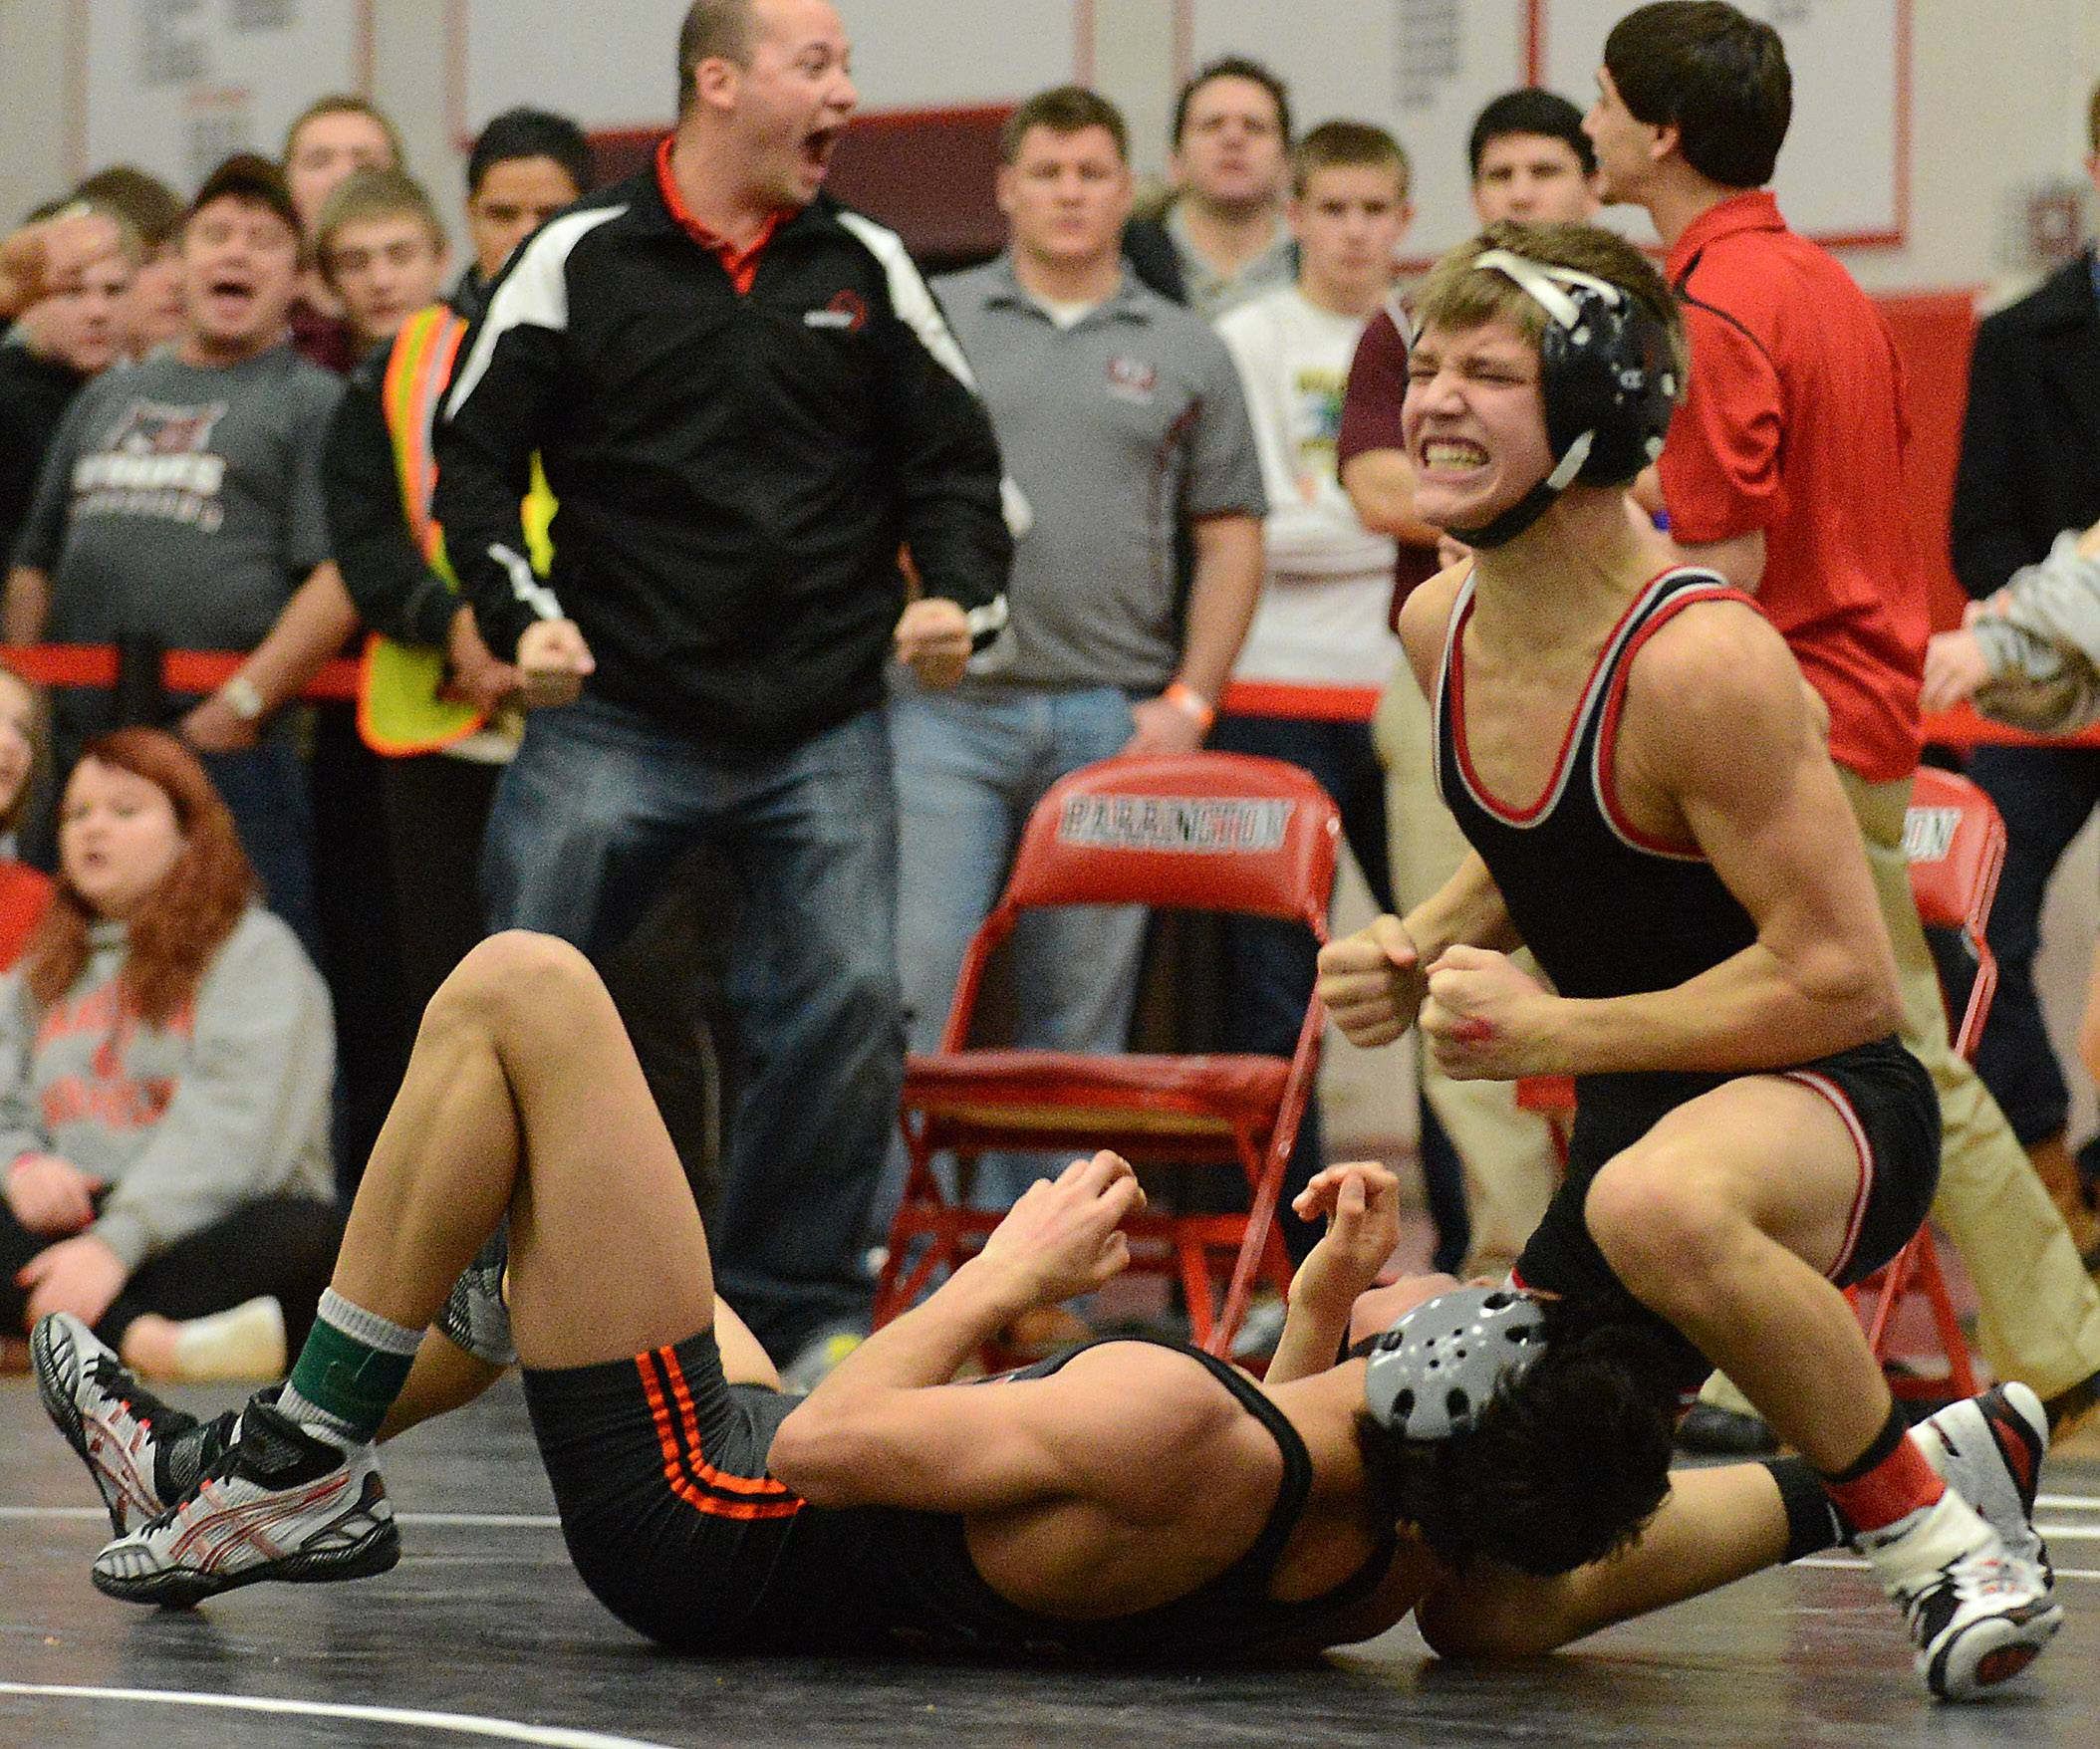 Barrington's Mitch Stathakis celebrates his 106-pound win Saturday at the Barrington sectional wrestling meet.